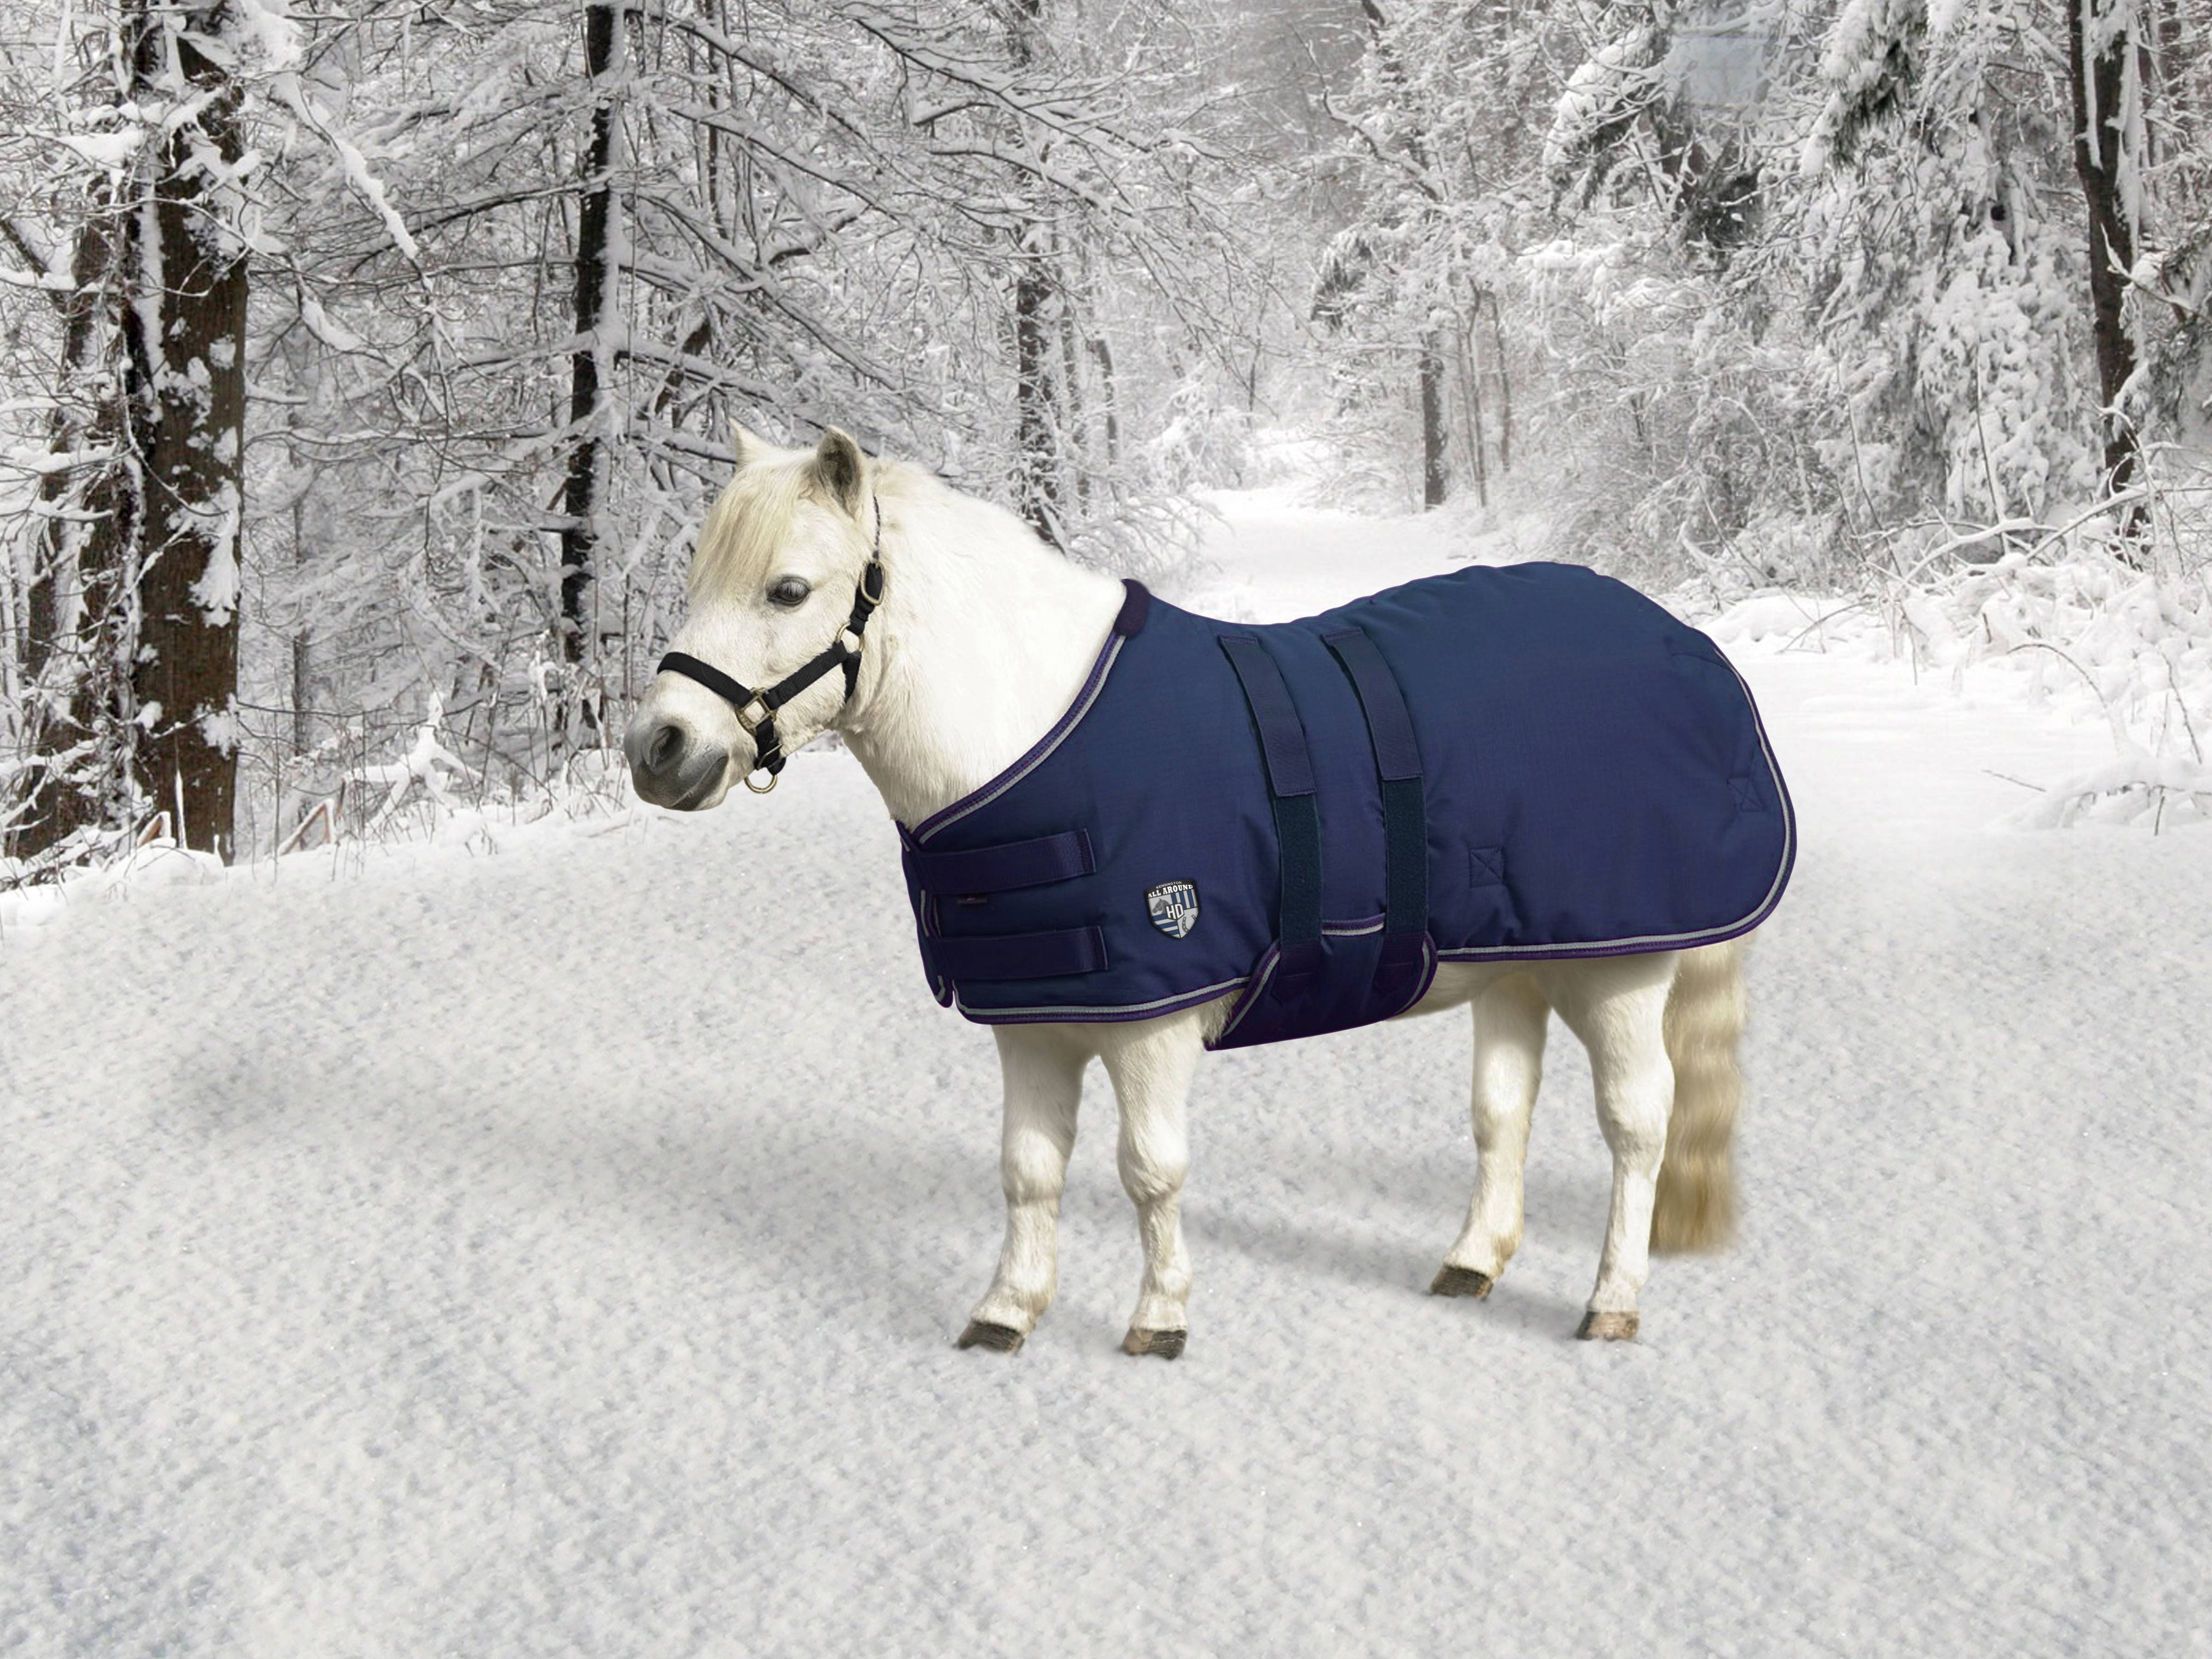 Kensington 1200D Heavyweight Pony Blanket